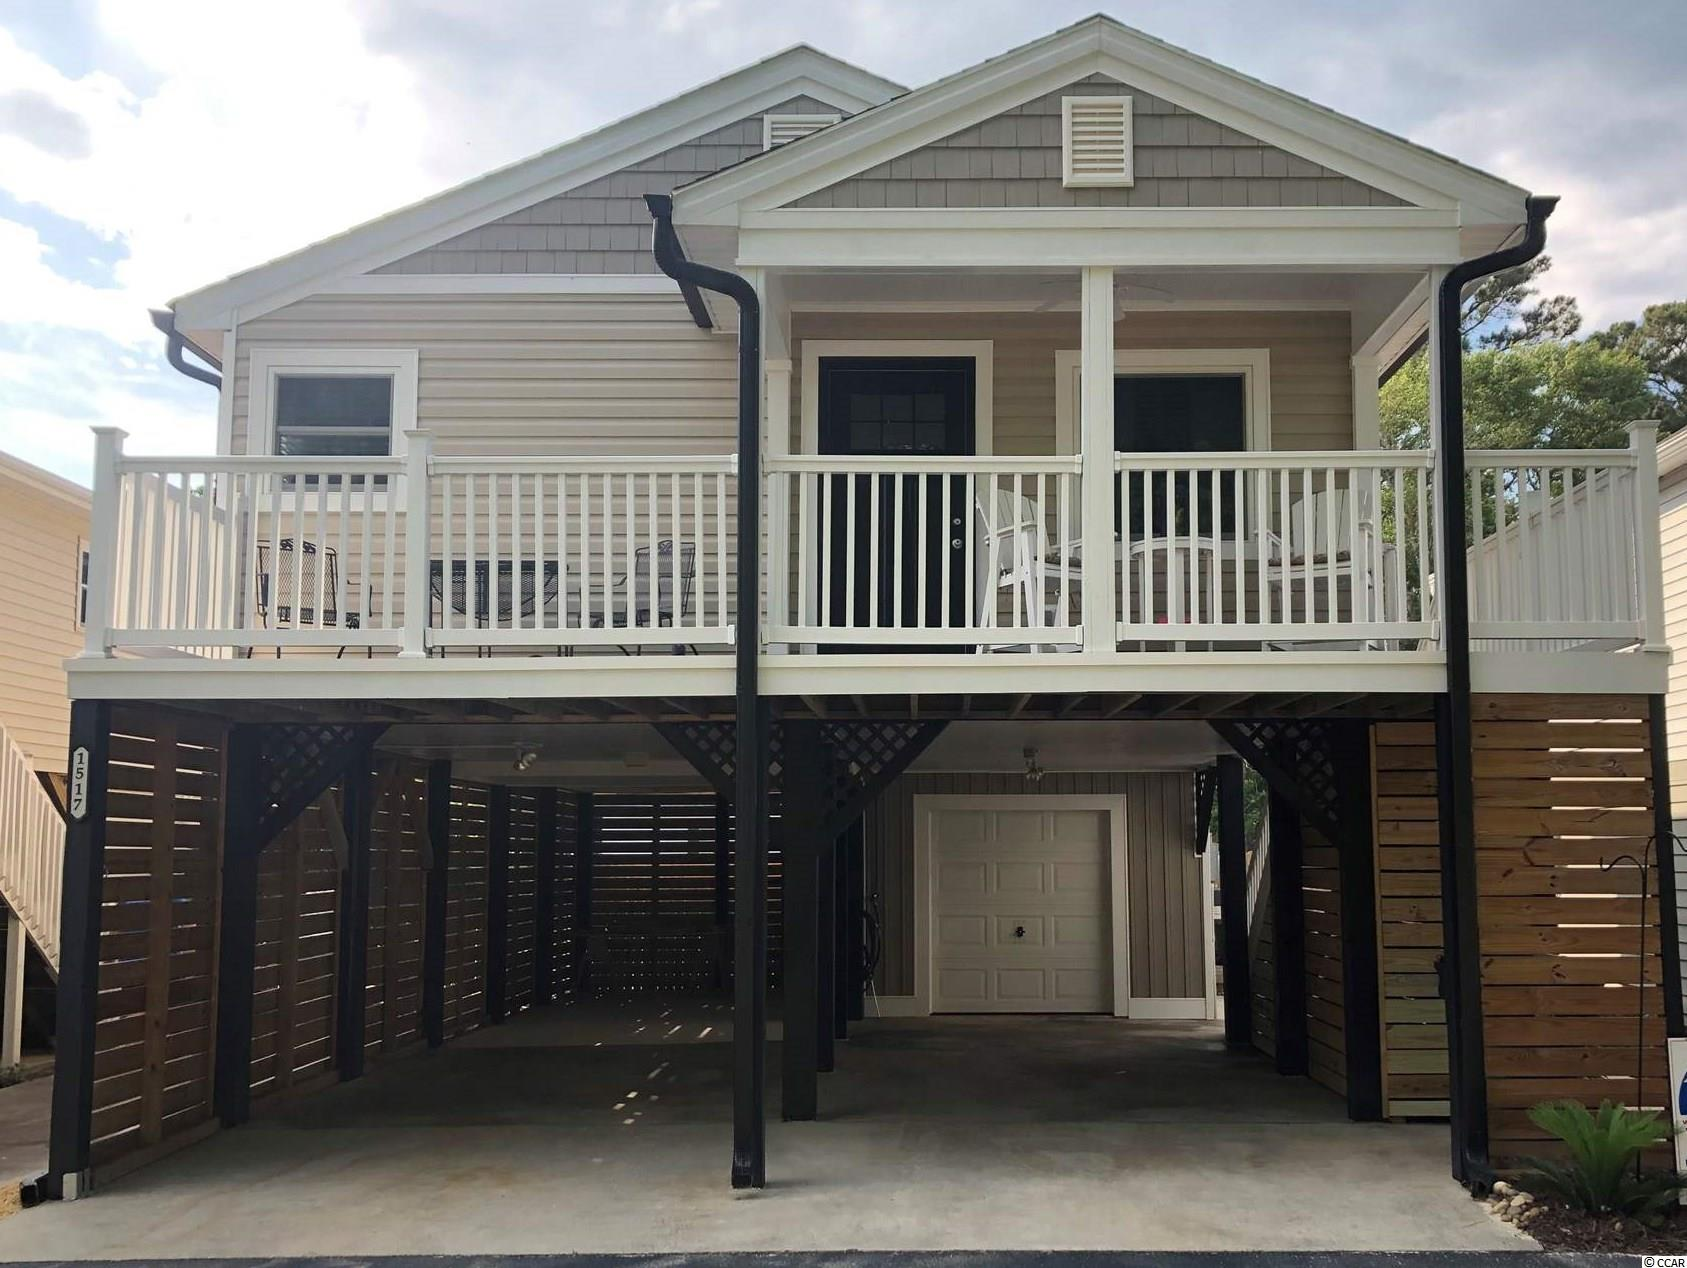 Beautiful Carolina Beach Home located east of HYW 17 in Garden City Beach. Completely updated. Easy walk or Golf Cart ride to the Beach. new HVAC 2020, deck & steps & added trek flooring with vinyl railing, new Garage door (2020) just a few of the updates. Laminate flooring in kitchen, living room and hallway. Granite countertops in Kitchen and much more! Furniture negotiable.